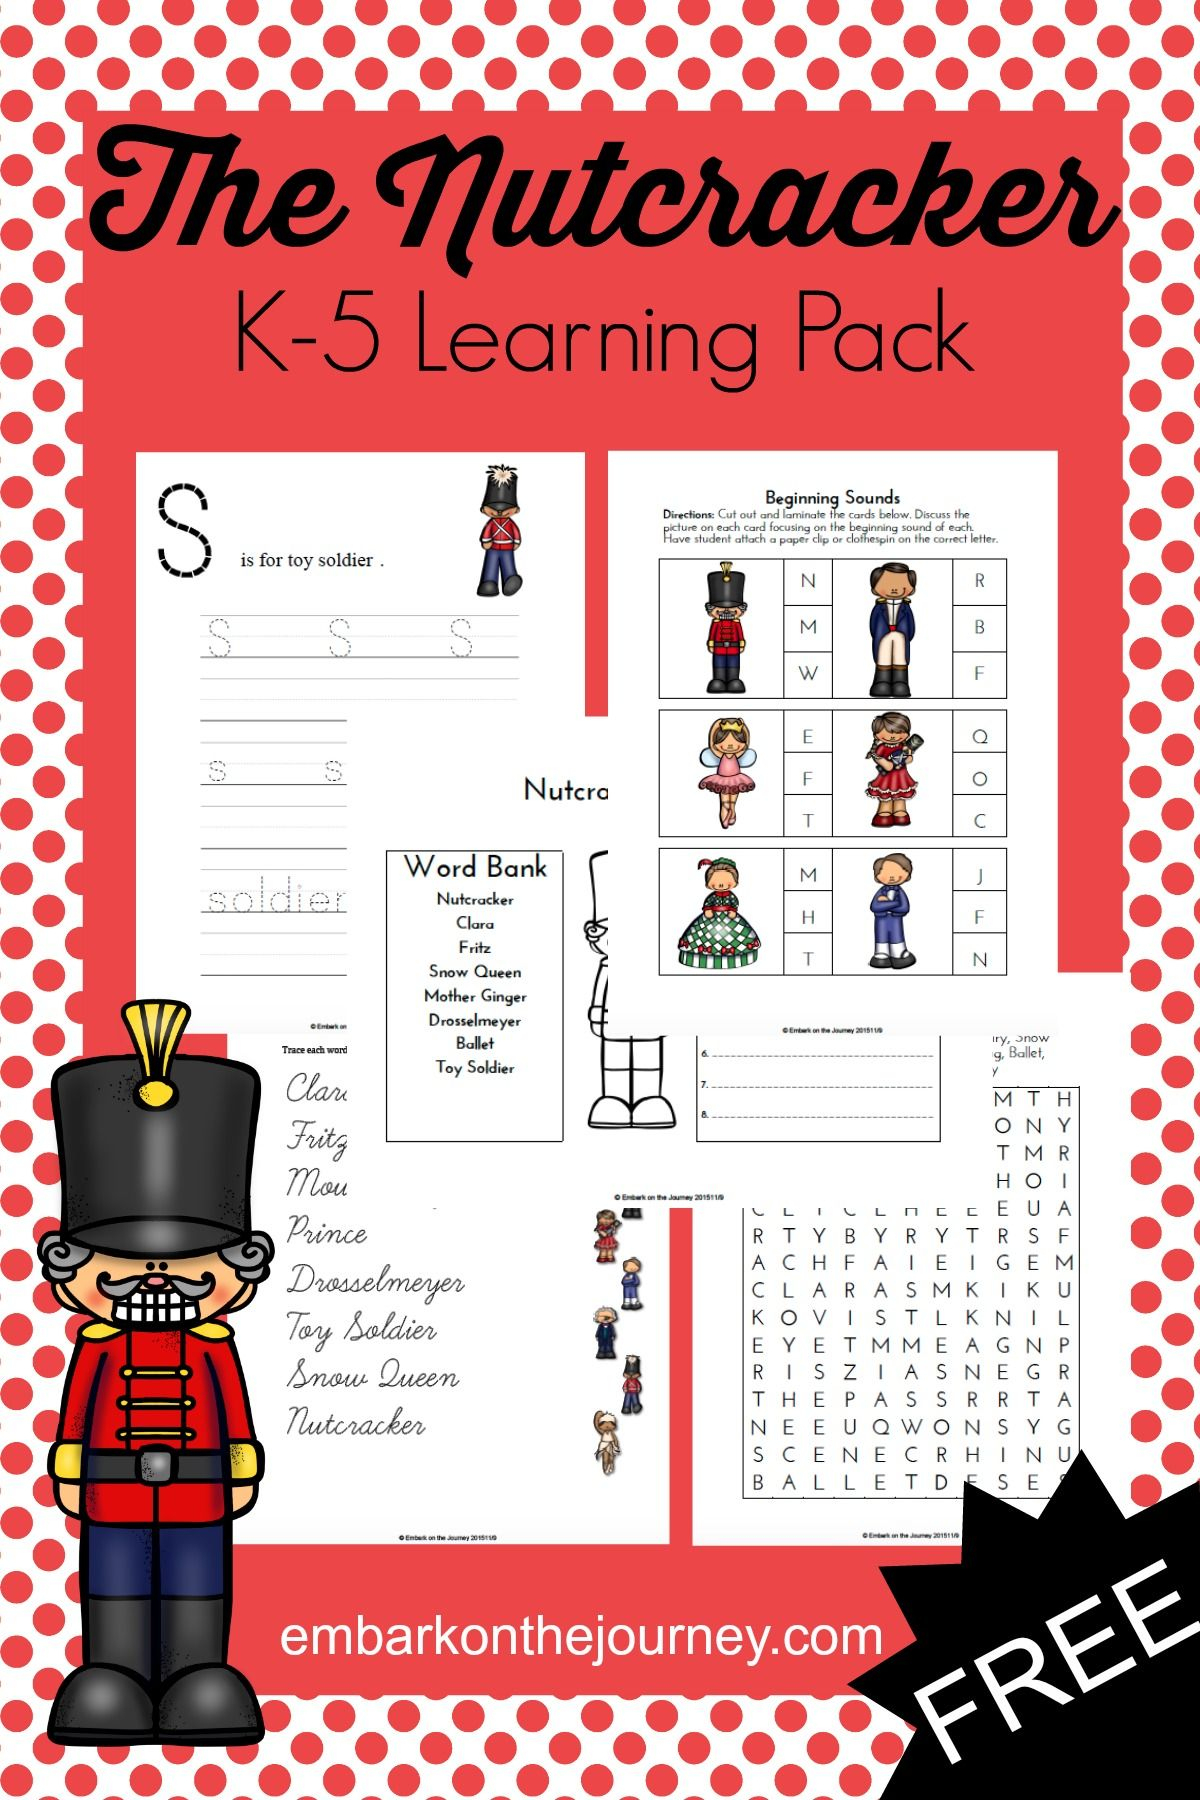 The Nutcracker Printable Learning Pack | Worksheets & Printables For | Nutcracker Worksheets Printable